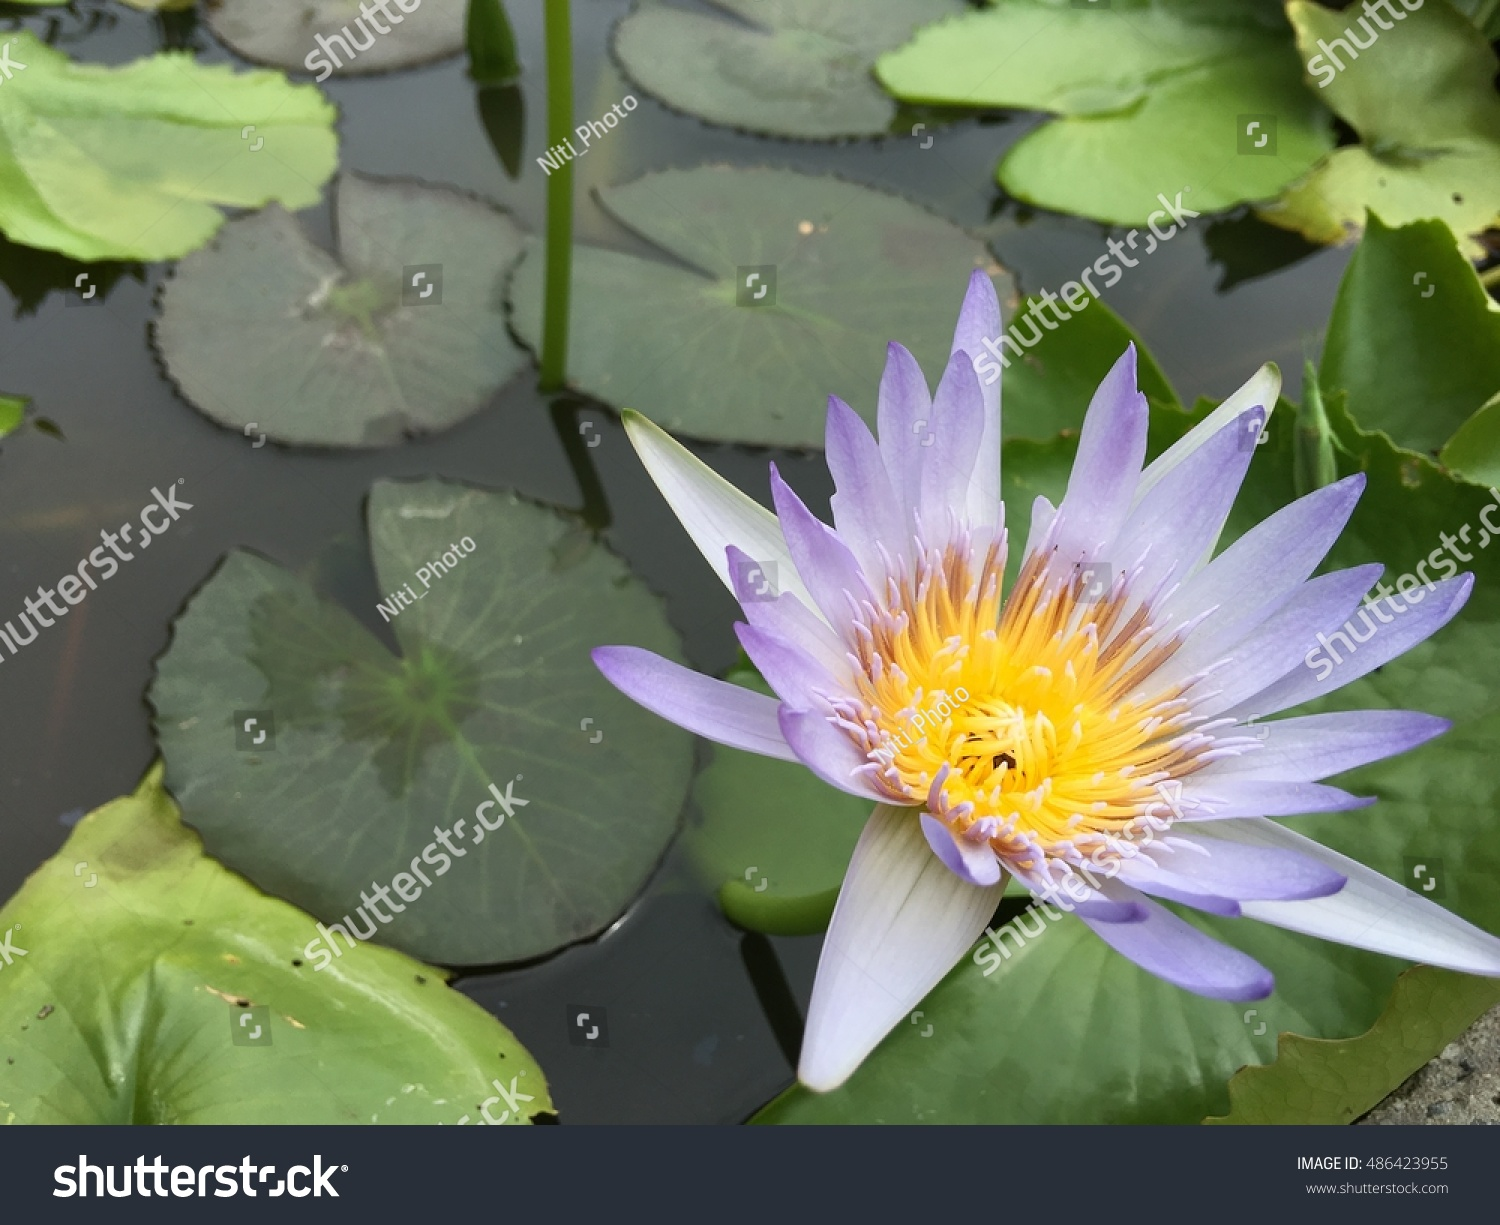 This Beautiful Waterlily Lotus Flower Complimented Stock Photo Safe